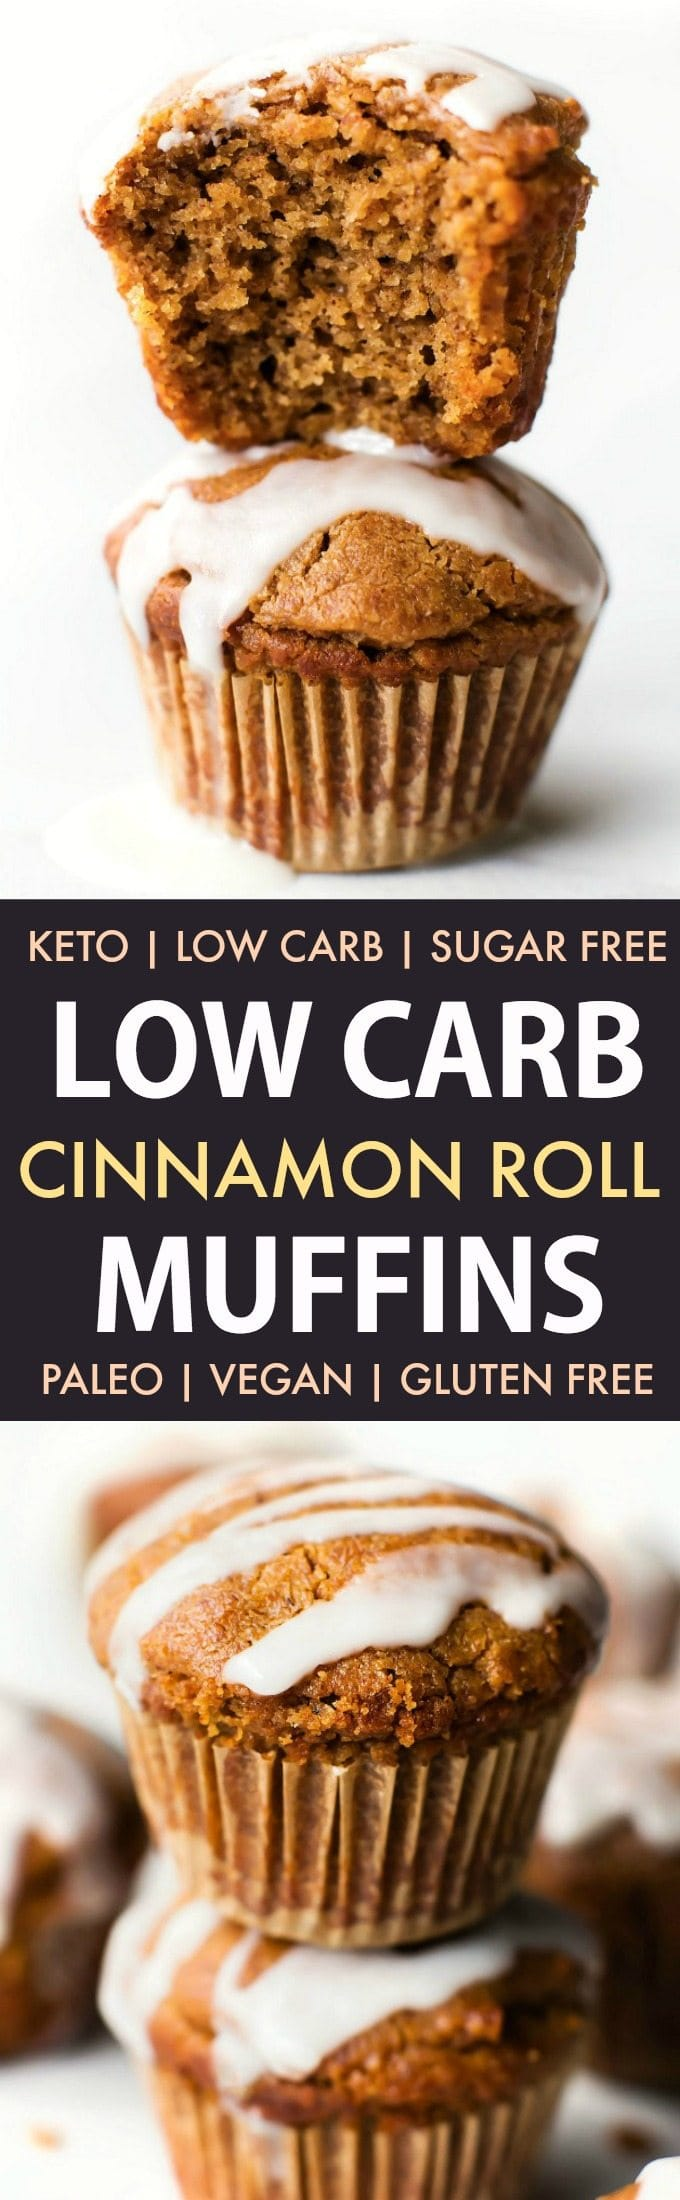 Low Carb Keto Cinnamon Roll Muffins